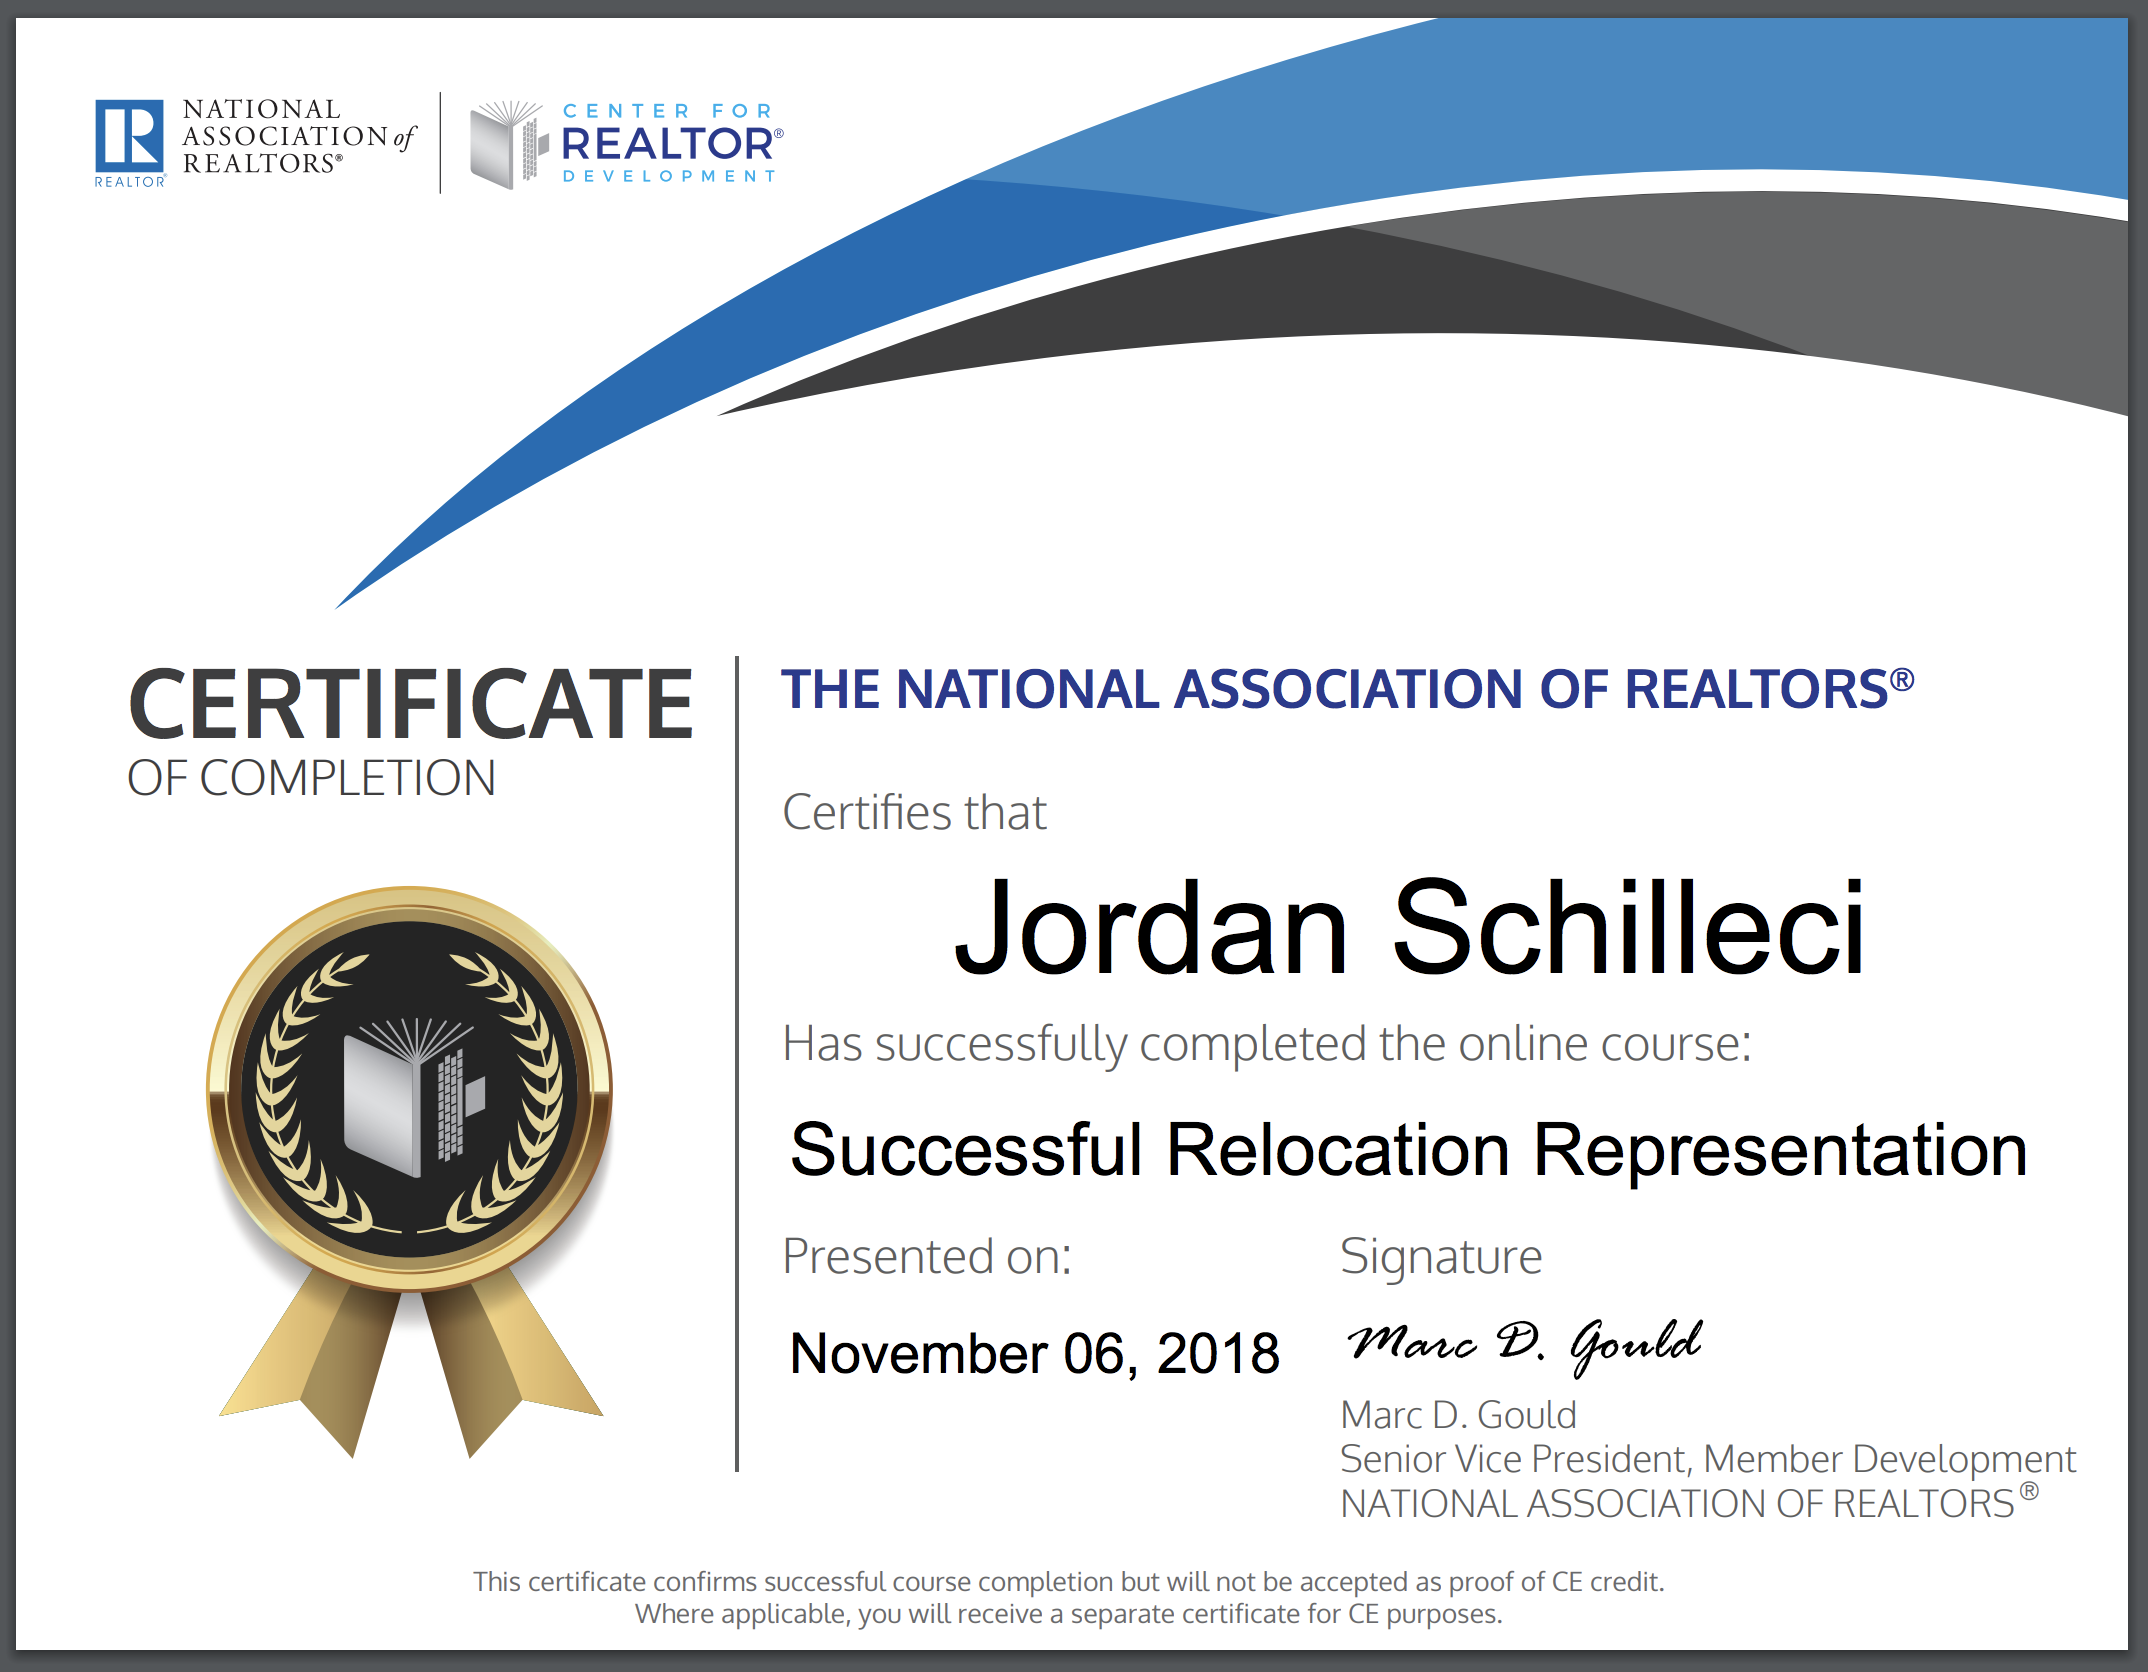 relocation specialist in conroe the woodlands tomball klein spring texas tx real estate agent realtor in the local area successful relocation representation certificate